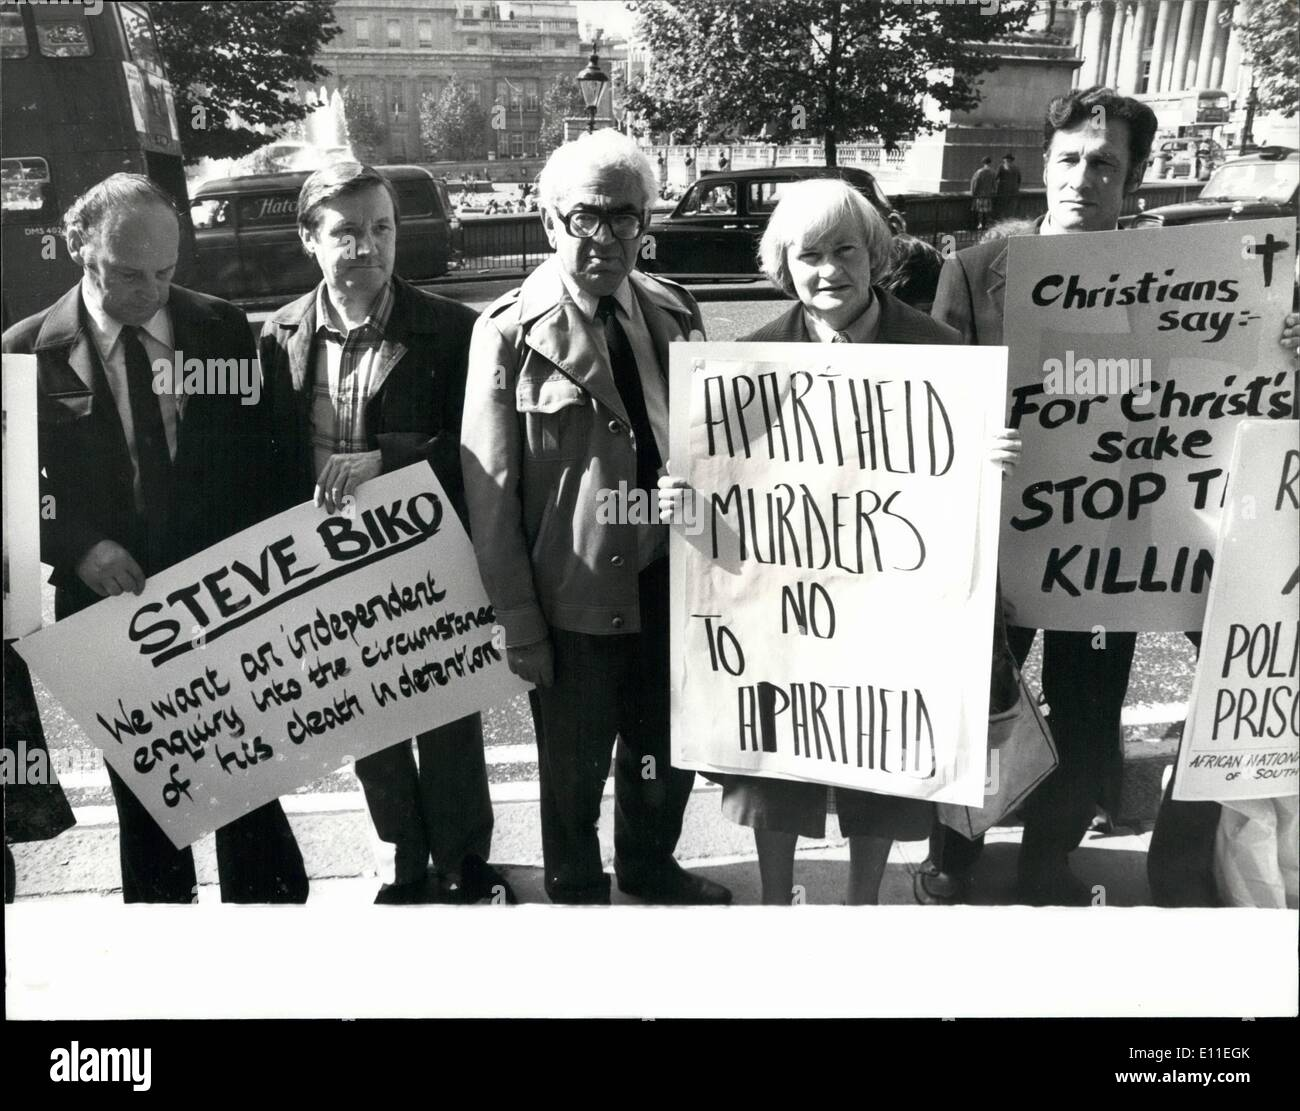 Sep. 09, 1977 - Anti-Apartheid Demonstration  The Death Of Steve iko Outside South: The death of Stev who announced - Stock Image